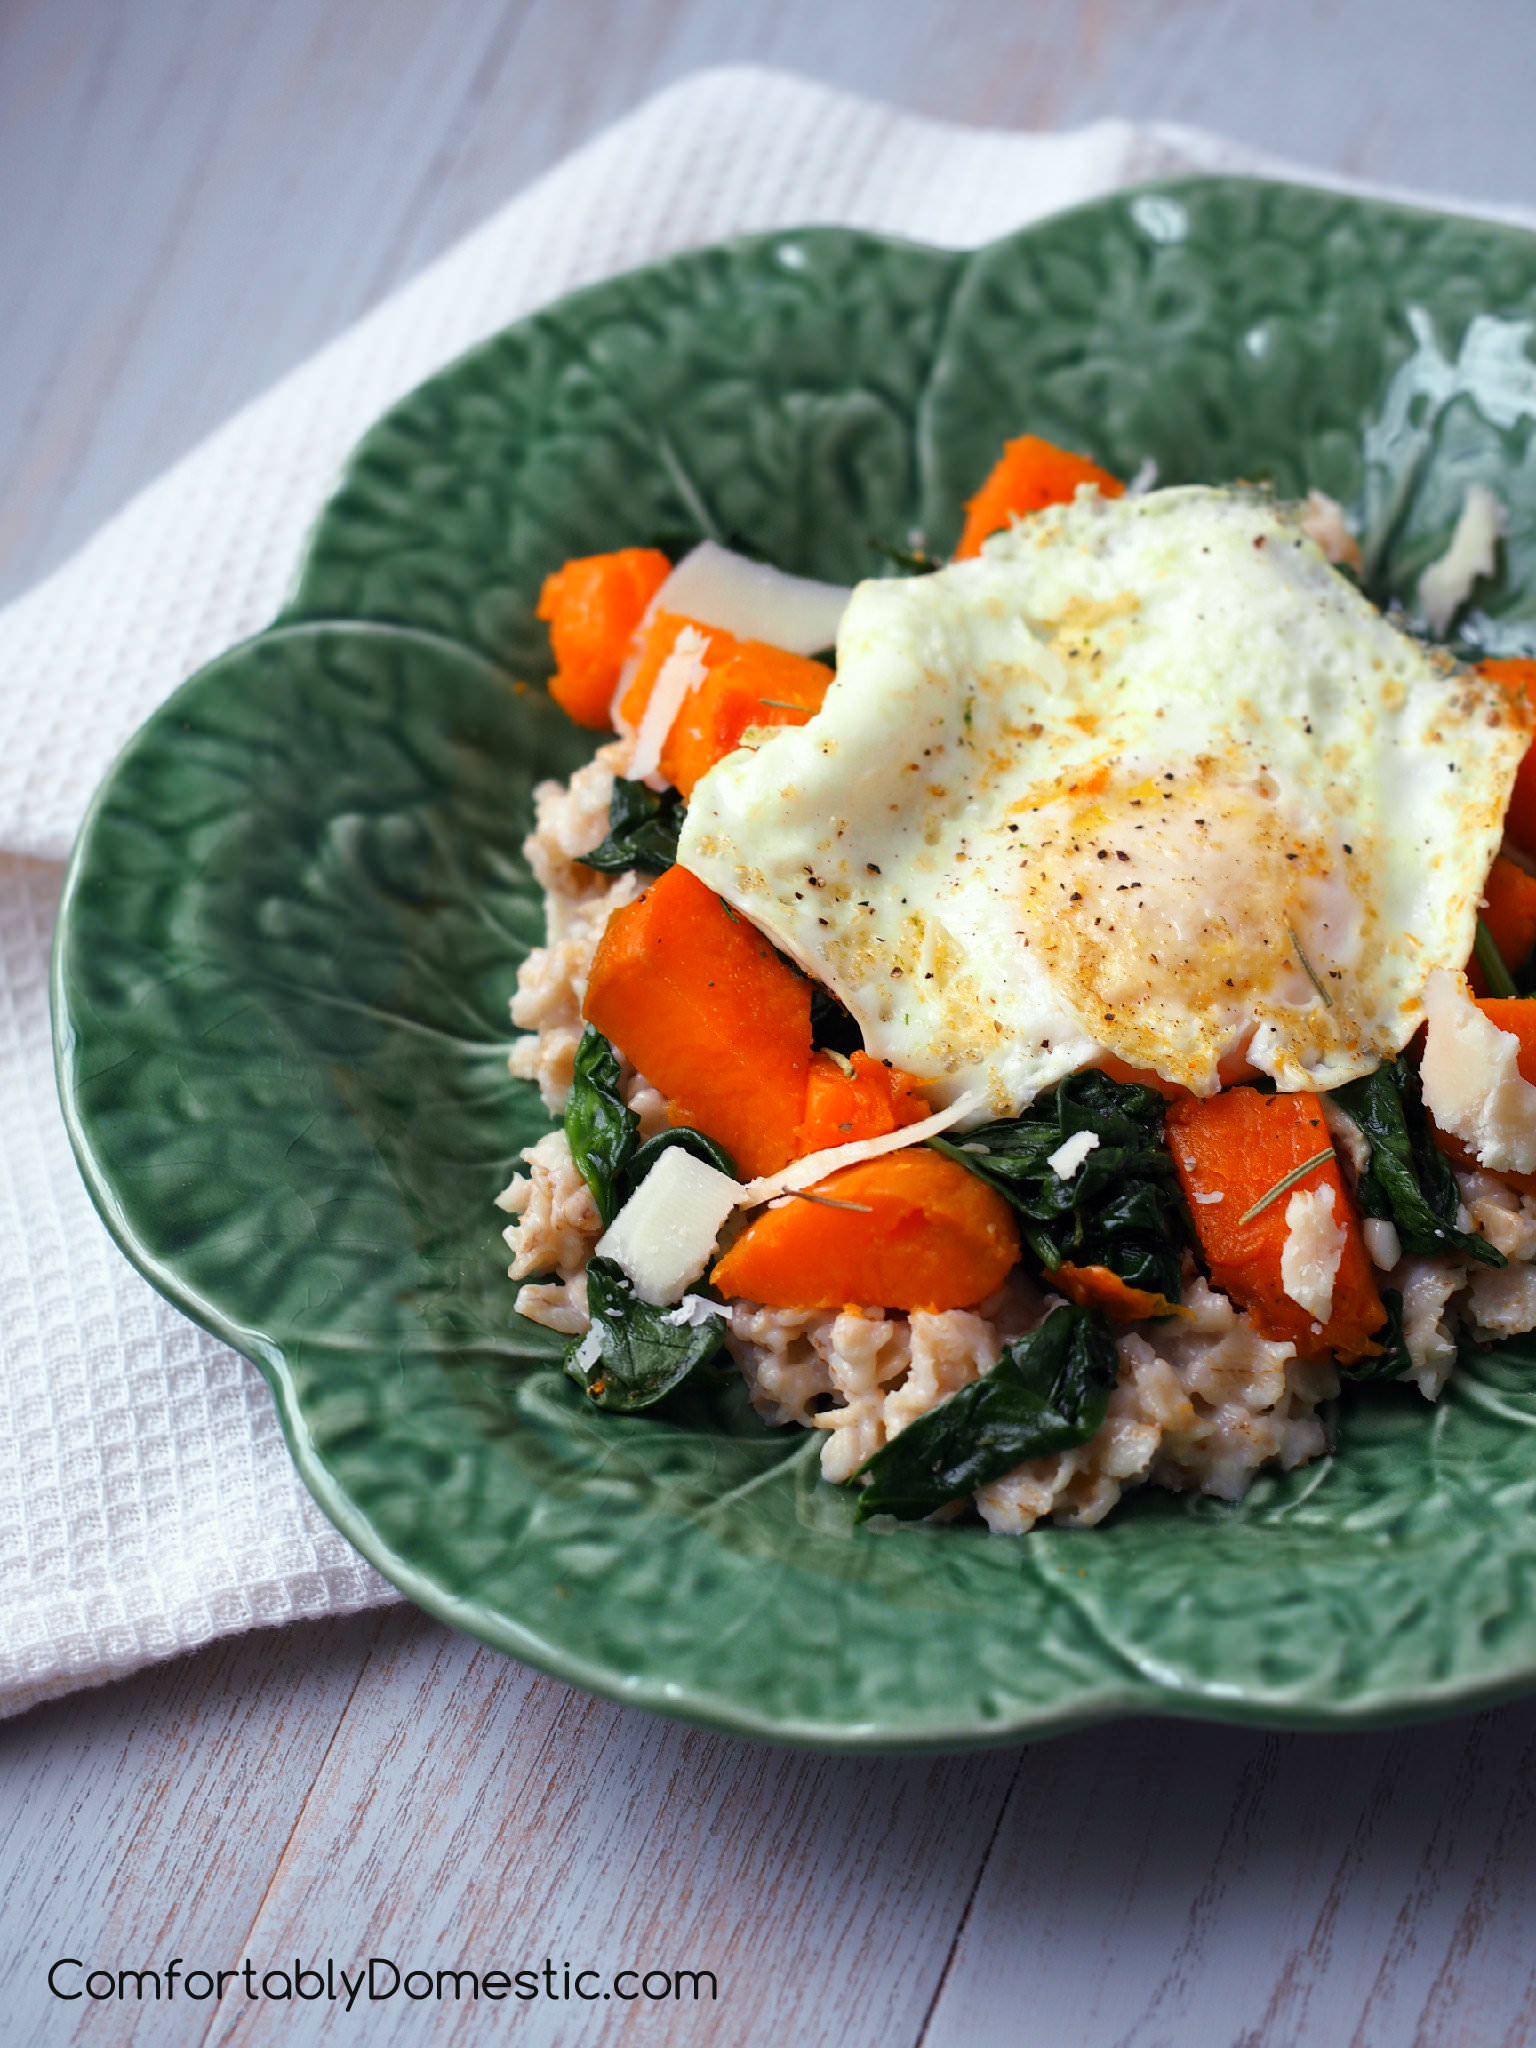 Savory oats are an infinitely satisfying way to start the day! Vibrant spinach, roasted sweet potatoes, and a farm fresh egg rest atop a bed of healthy oats for a delicious breakfast. | ComfortablyDomestic.com